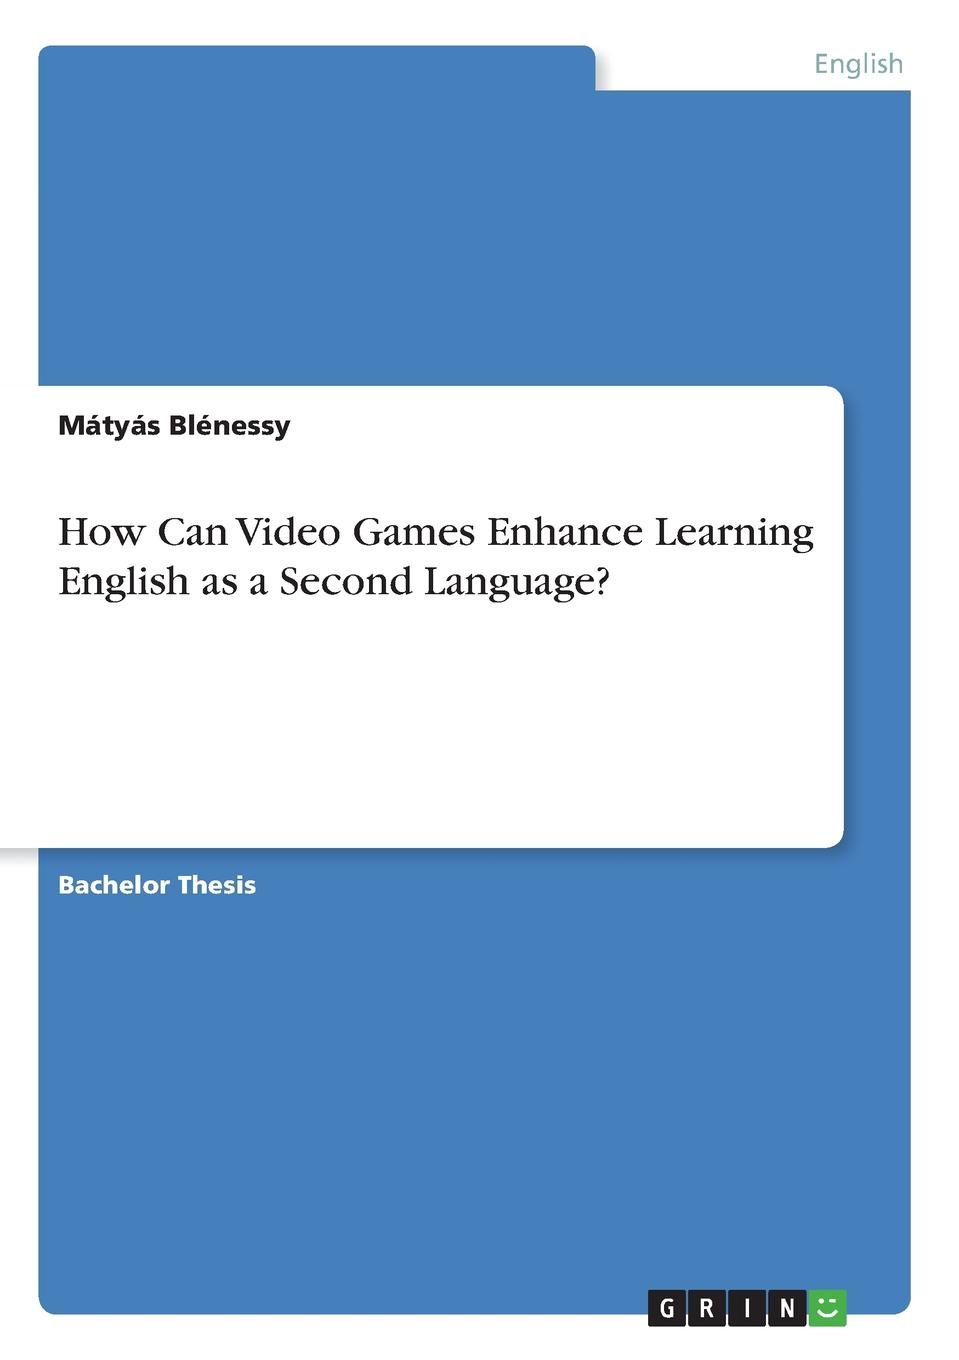 Mátyás Blénessy How Can Video Games Enhance Learning English as a Second Language.